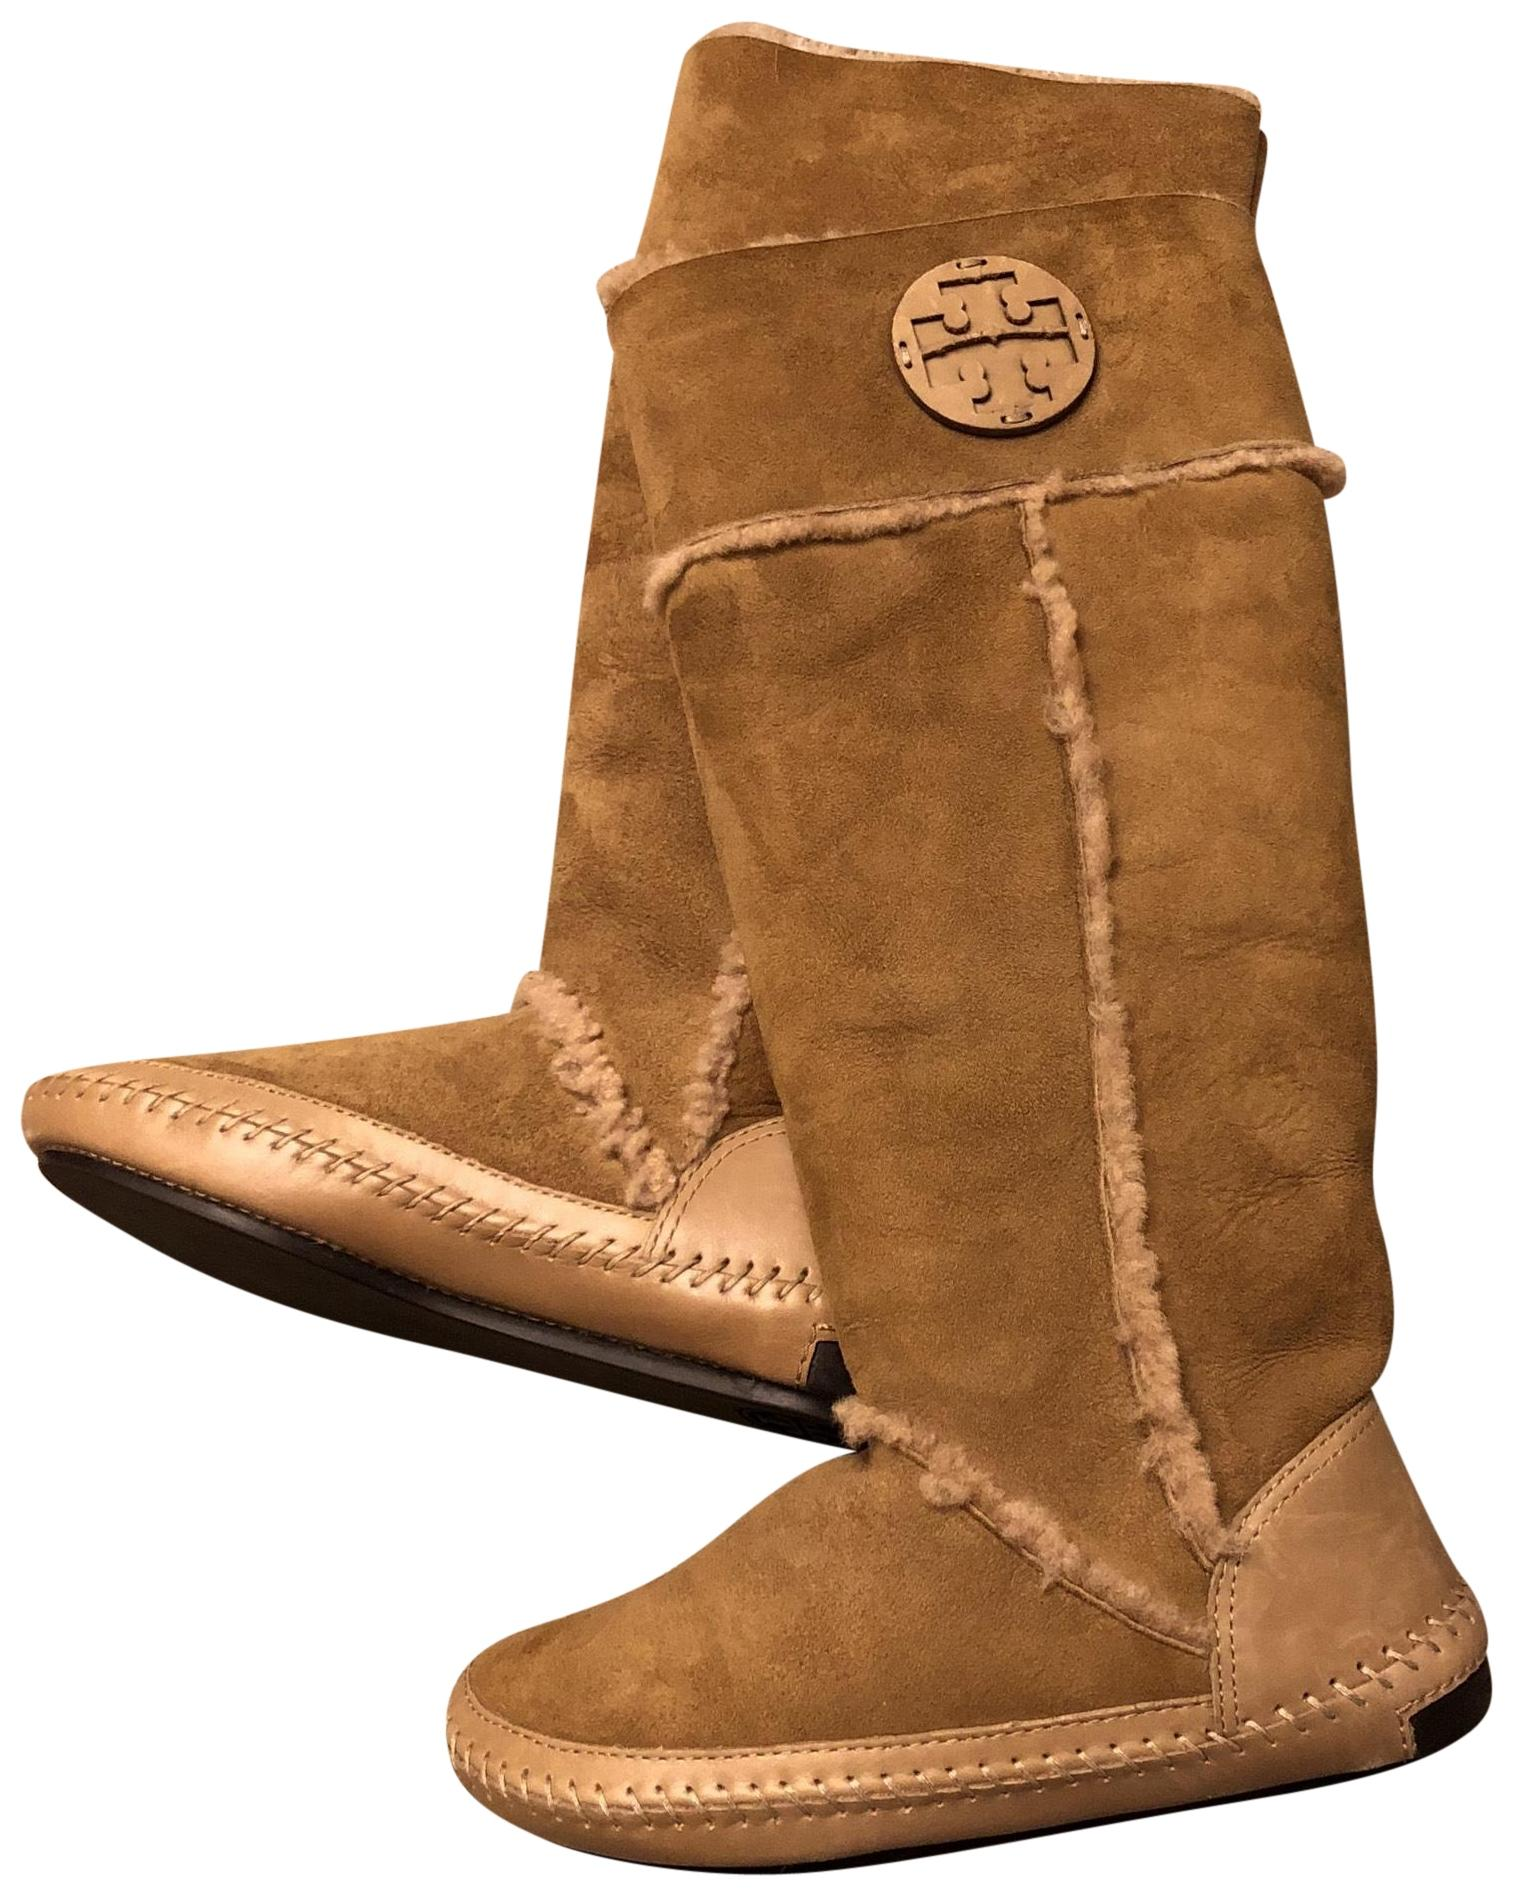 recommend for sale Tory Burch Leather Suede-Trimmed Boots clearance sale online PxDl2FDWsA